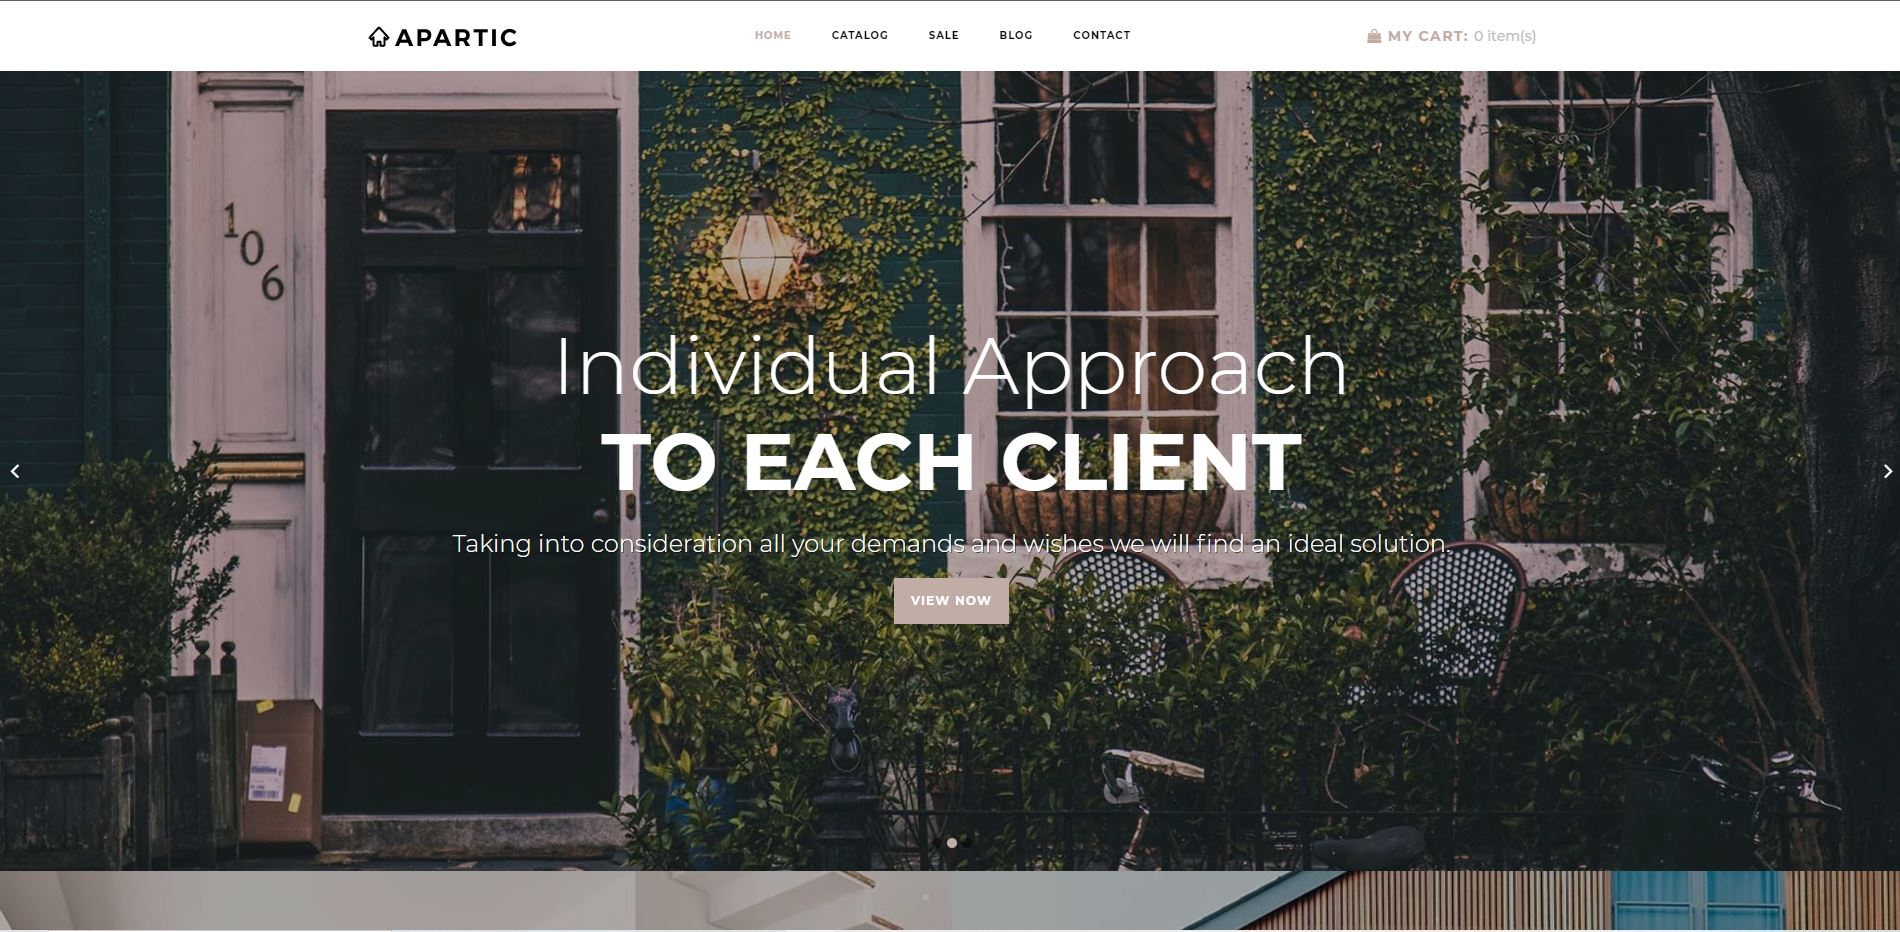 Apartic Real Estate Shopify Themes